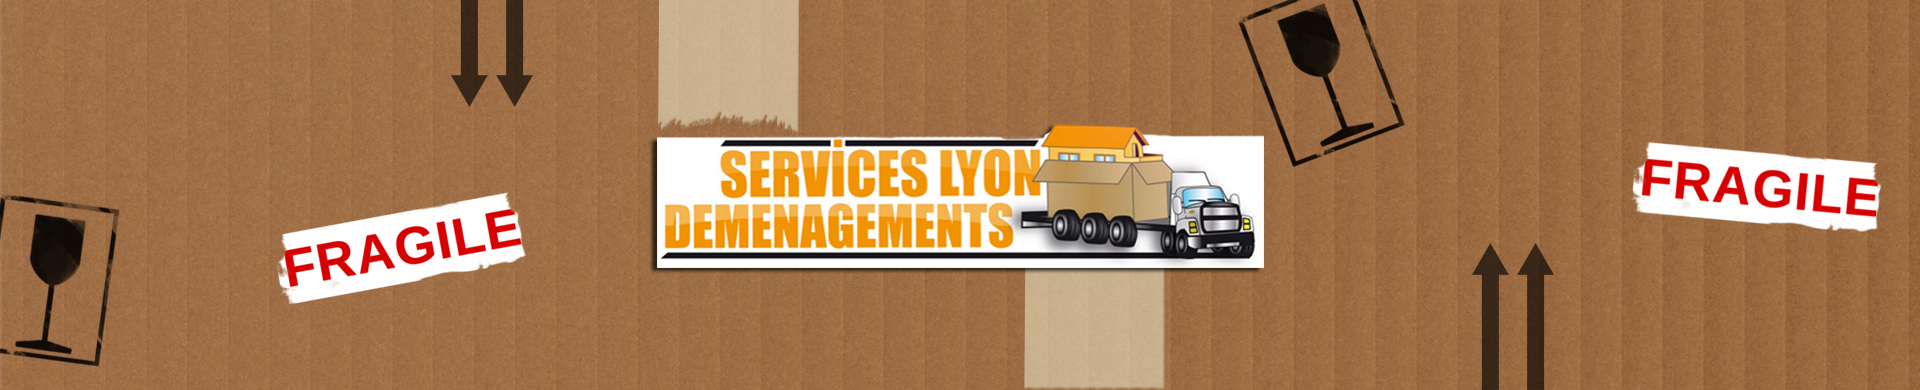 Services lyon demenagements